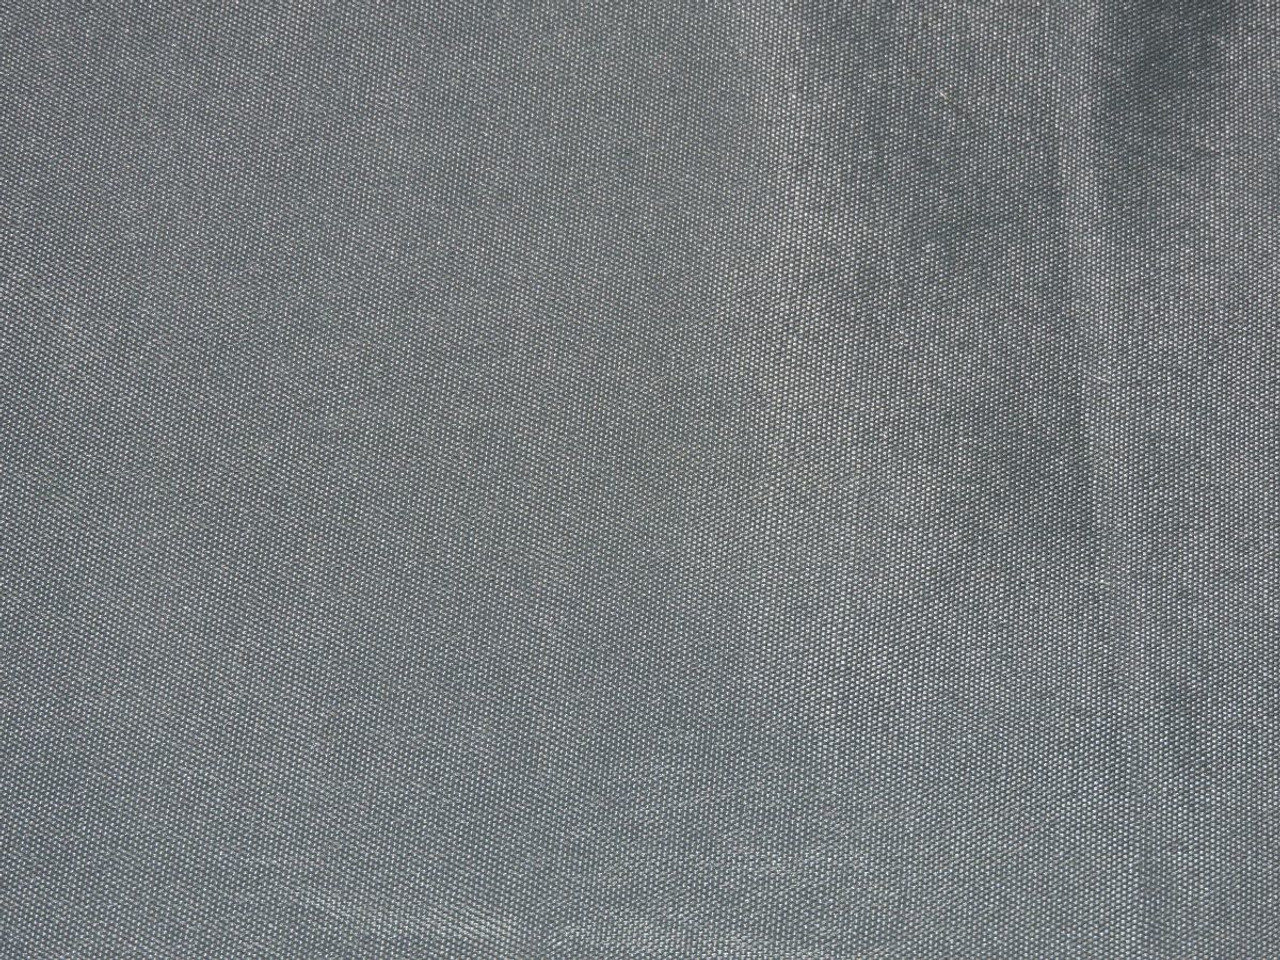 All weather, sun resistant outer fabric shell